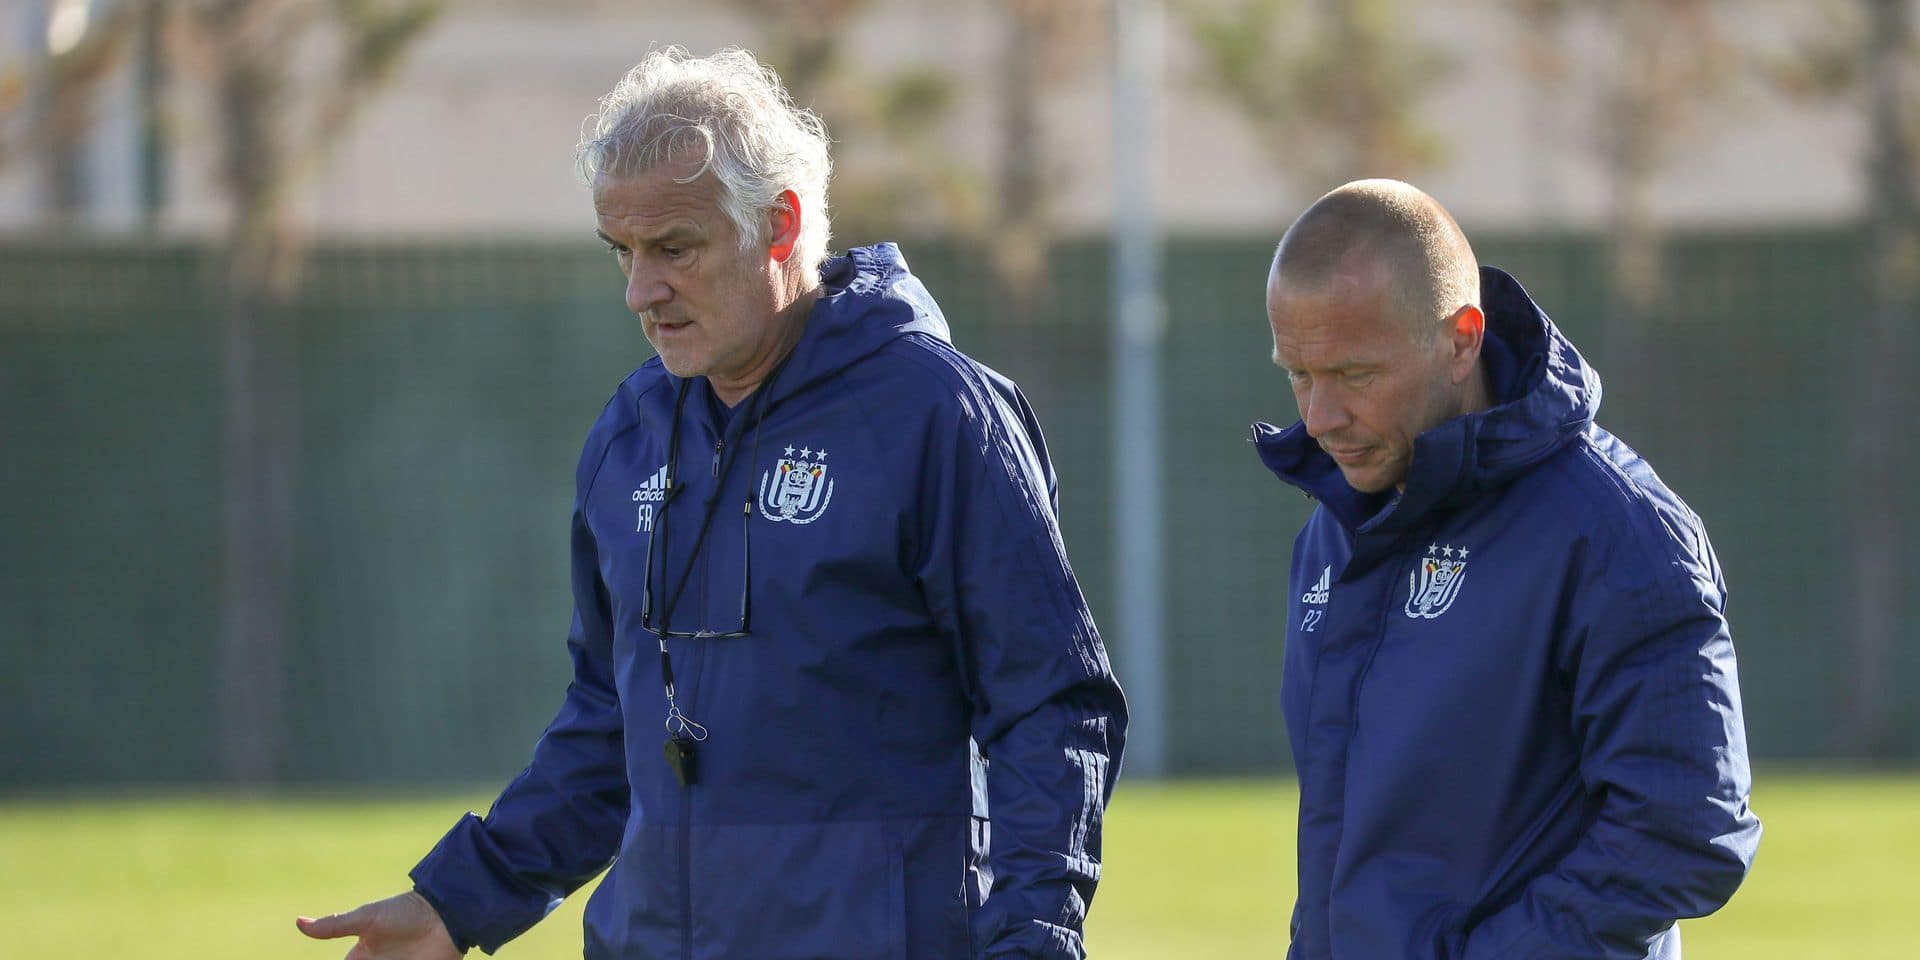 Anderlecht's head coach Fred Rutten and Anderlecht's assistant coach Par Zetterberg pictured during on the first day for the press at the winter training camp of Belgian first division soccer team RSC Anderlecht, in San Pedro Del Pinatar, Spain, Friday 11 January 2019. BELGA PHOTO VIRGINIE LEFOUR